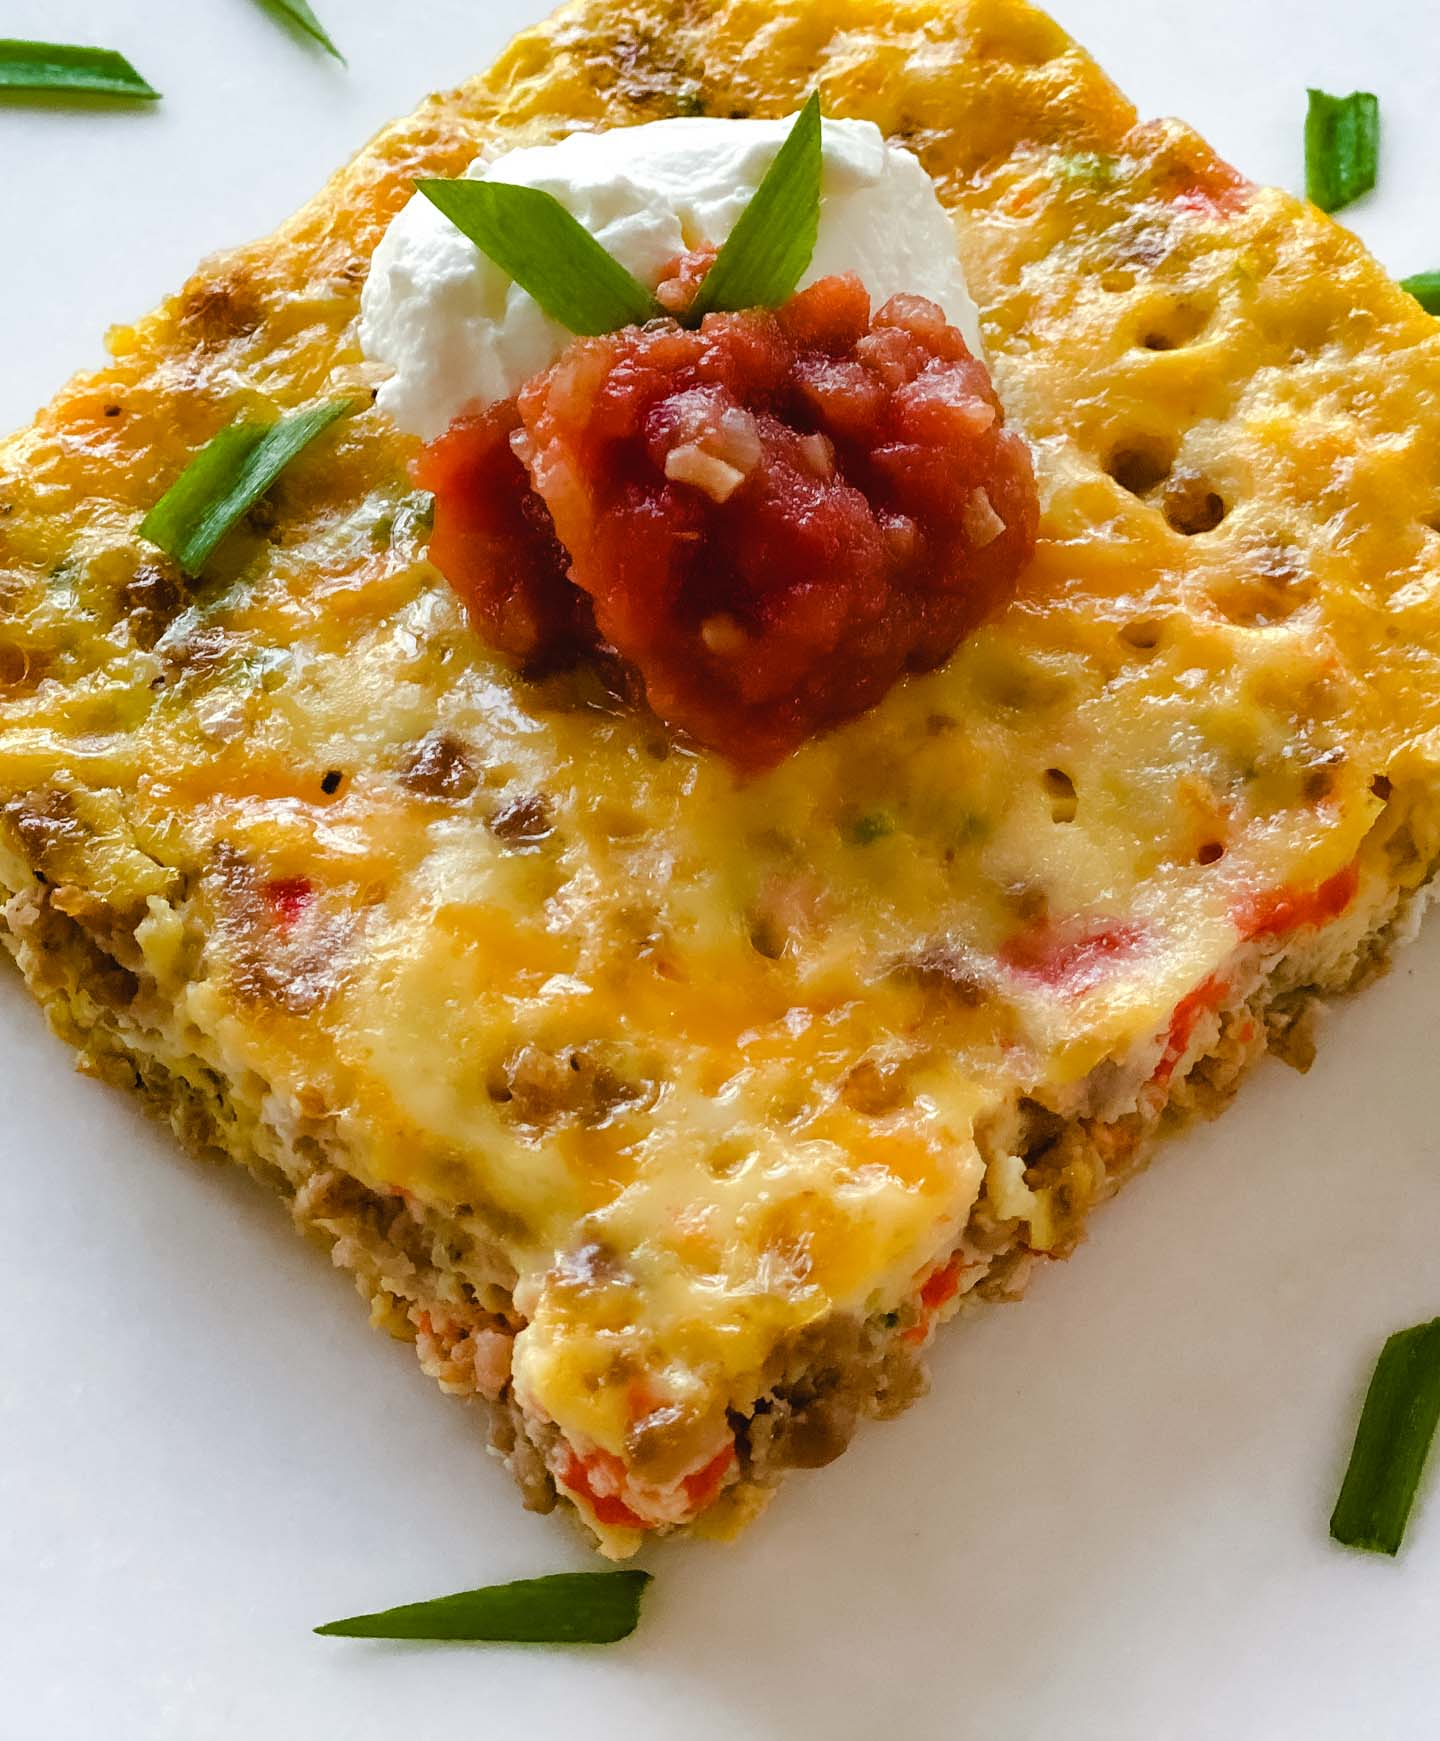 Egg casserole with salsa, sour cream,  green onions, red peppers, and cheese sitting on a white plate.